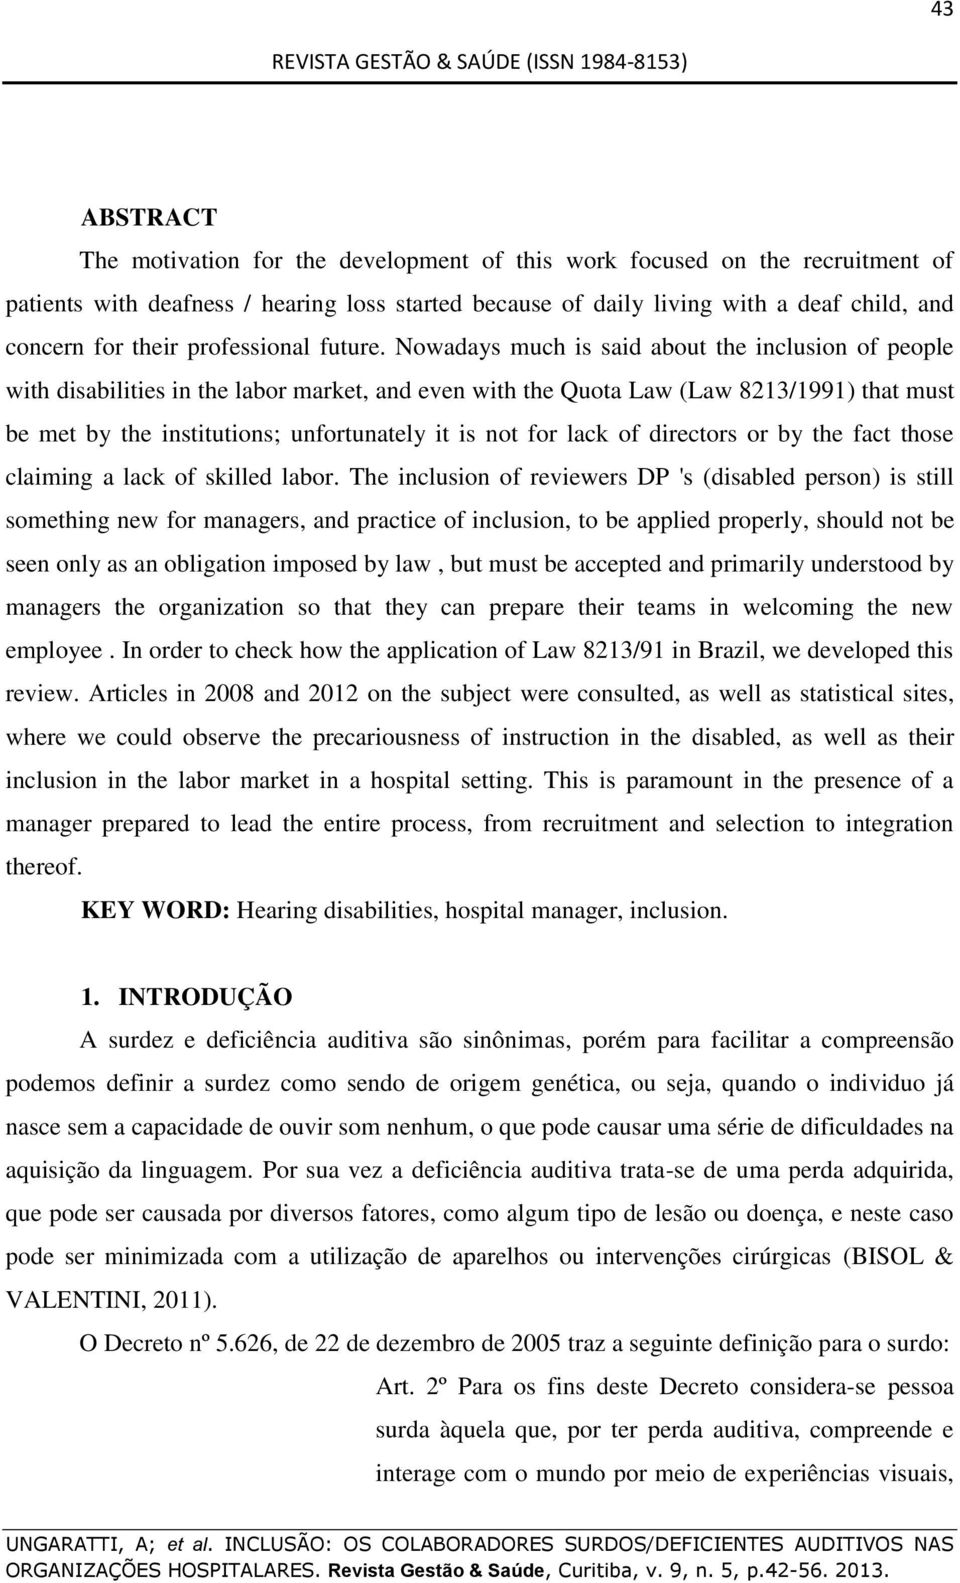 Nowadays much is said about the inclusion of people with disabilities in the labor market, and even with the Quota Law (Law 8213/1991) that must be met by the institutions; unfortunately it is not